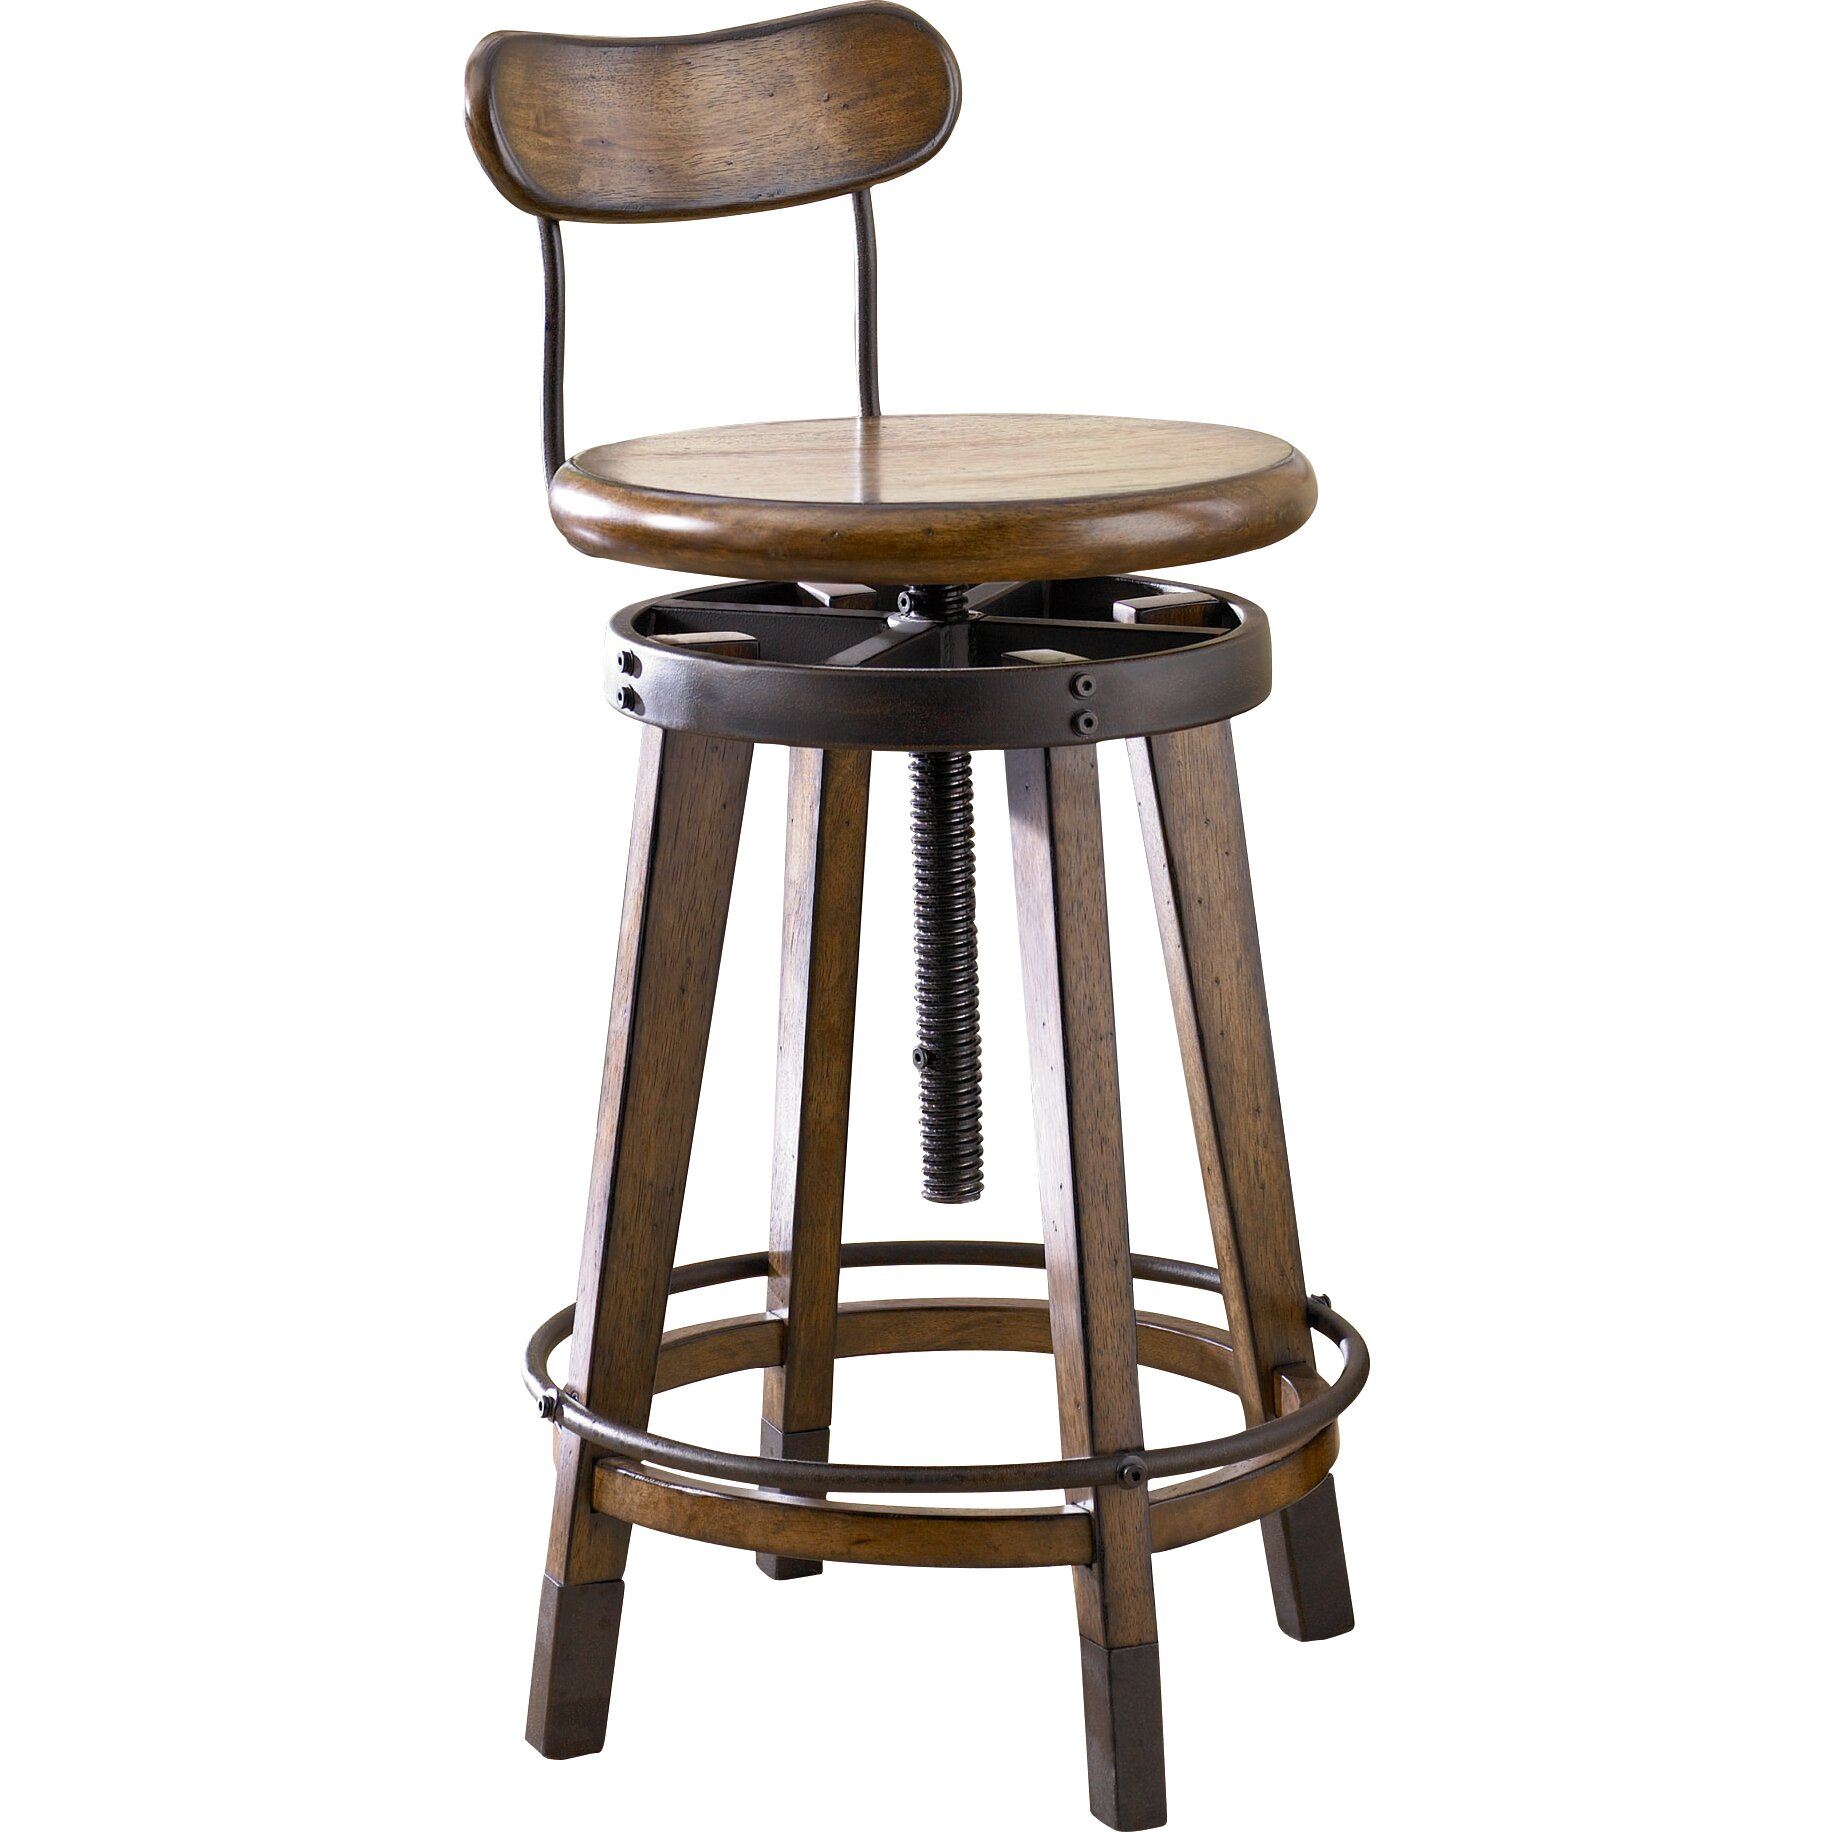 Hammary Studio Home Adjustable Height Swivel Bar Stool  : Hammary Studio Home Adjustable Height Swivel Bar Stool 166 948 from www.wayfair.com size 1832 x 1832 jpeg 326kB